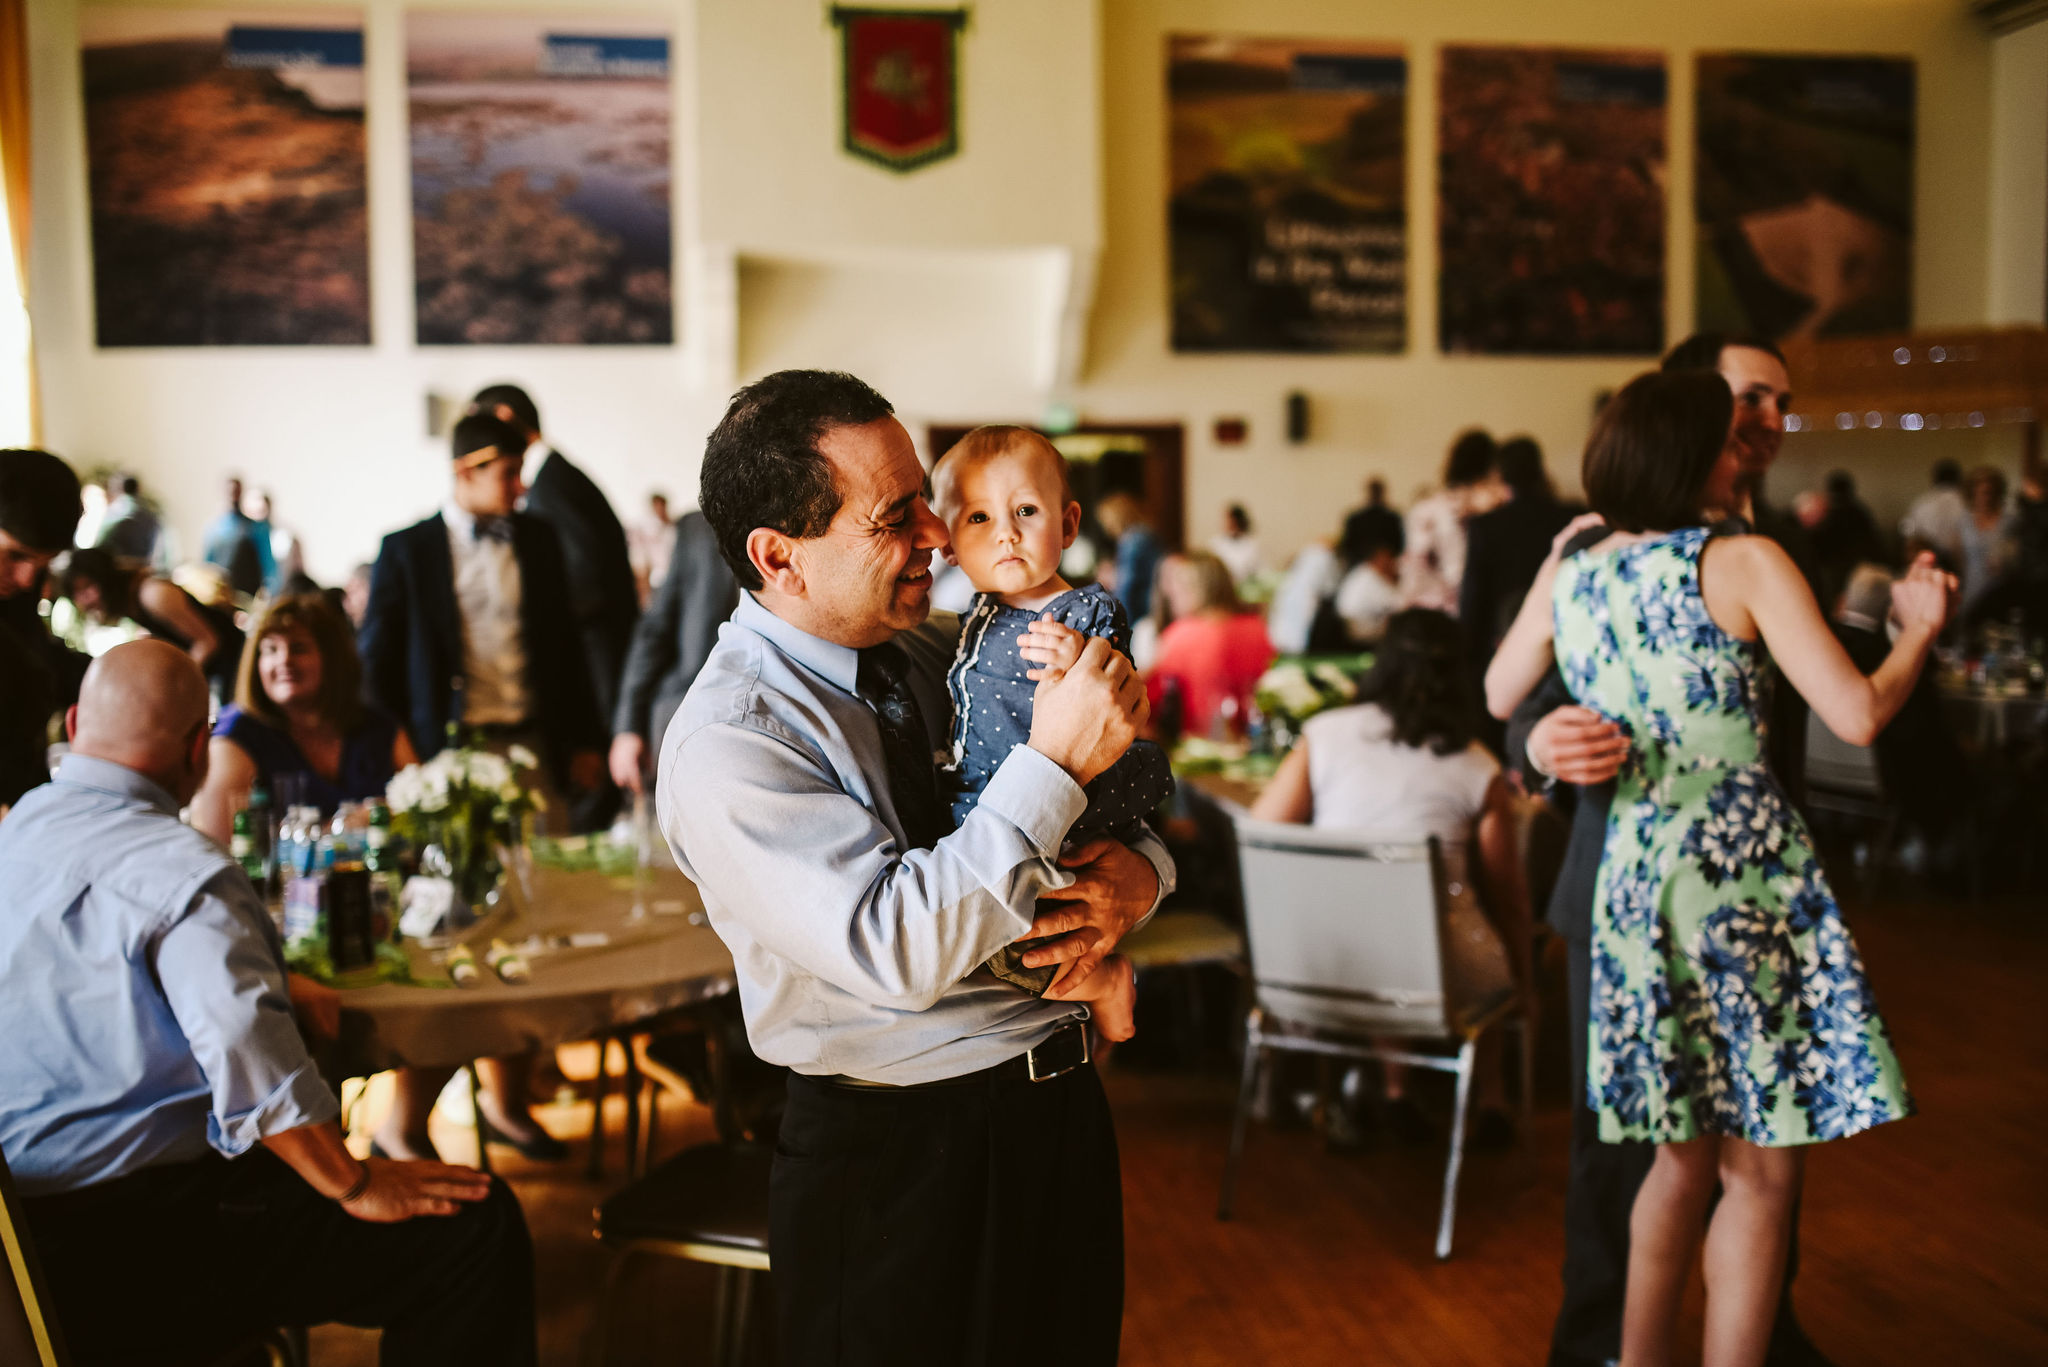 Baltimore, Lithuanian Dance Hall, Maryland Wedding Photographer, Vintage, Classic, 50s Style, Wedding Guest with Baby, Wedding Reception, Candid Photo